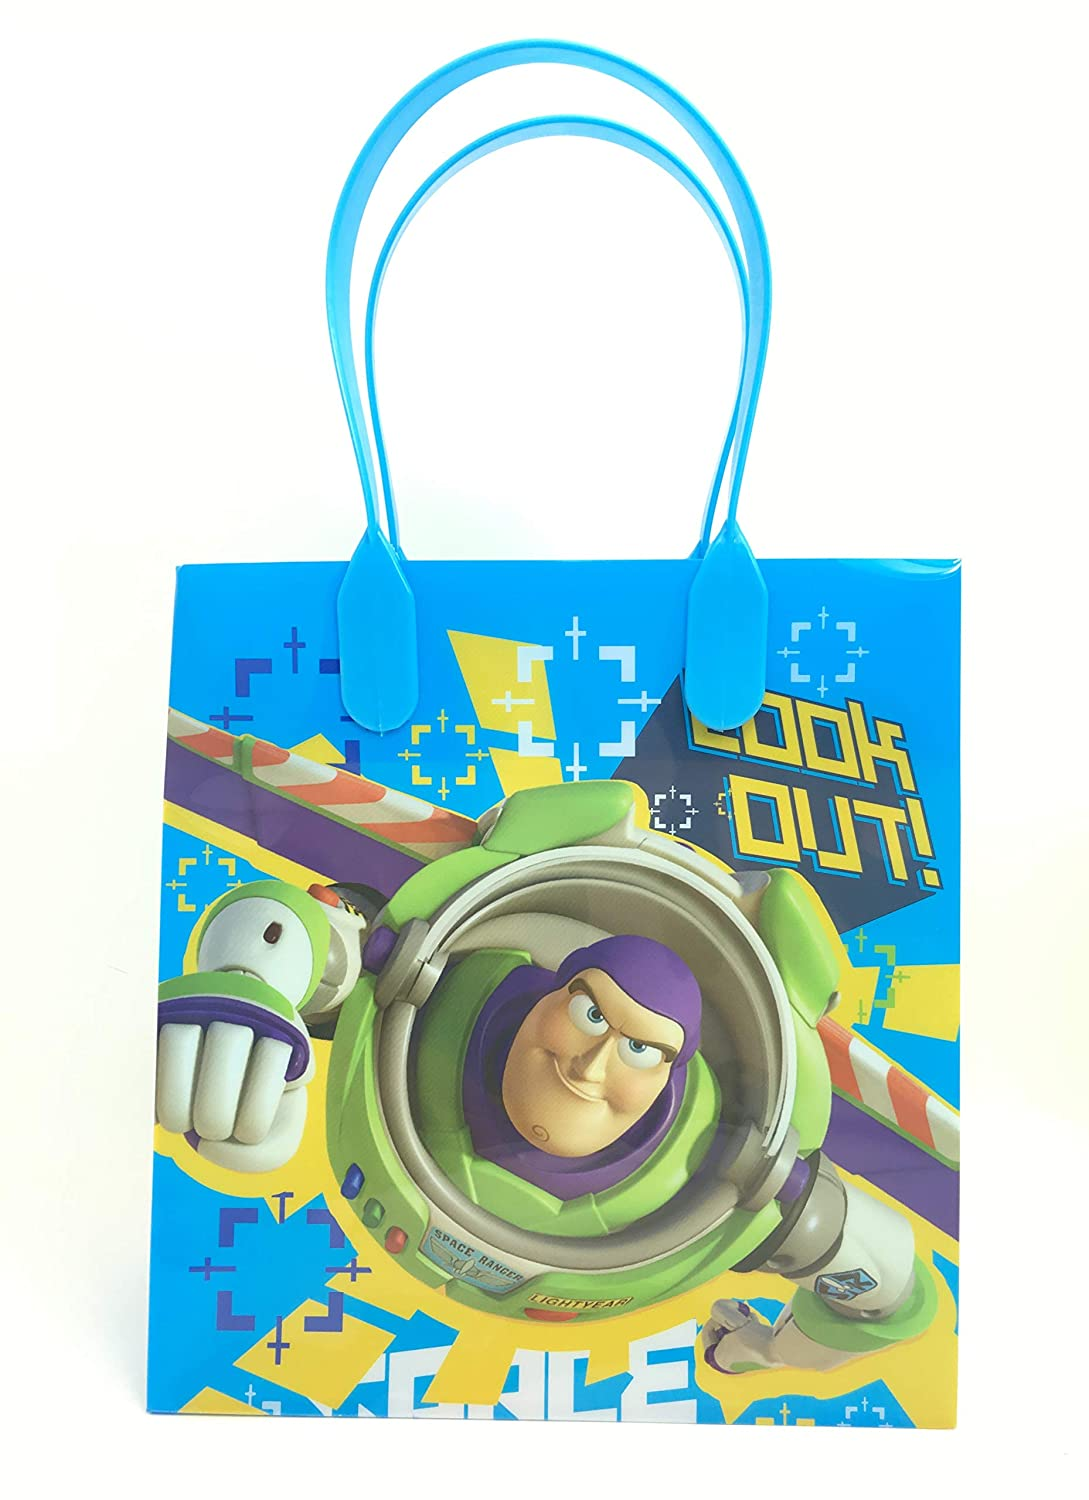 Toys Story New West Cowboy 12 Party Favor Reusable Goodie Small Gift Bags